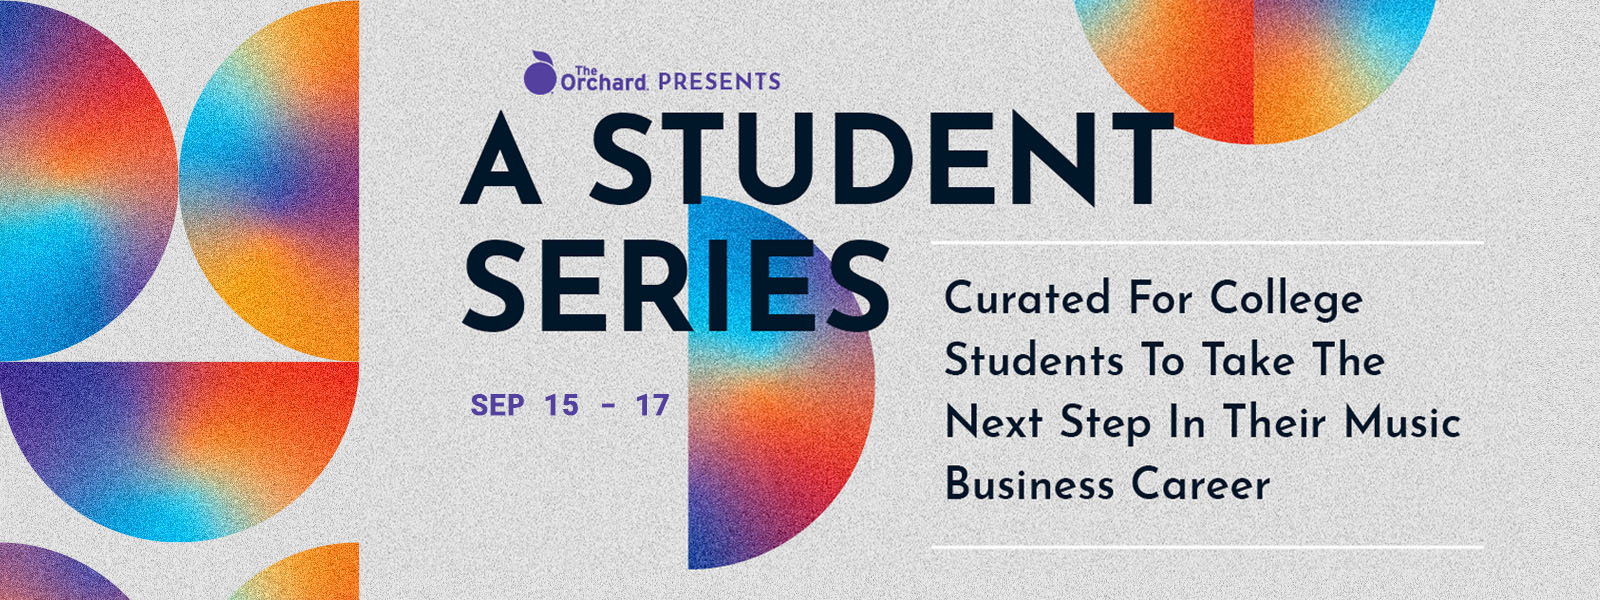 The Orchard Presents A 3-Day Student Series